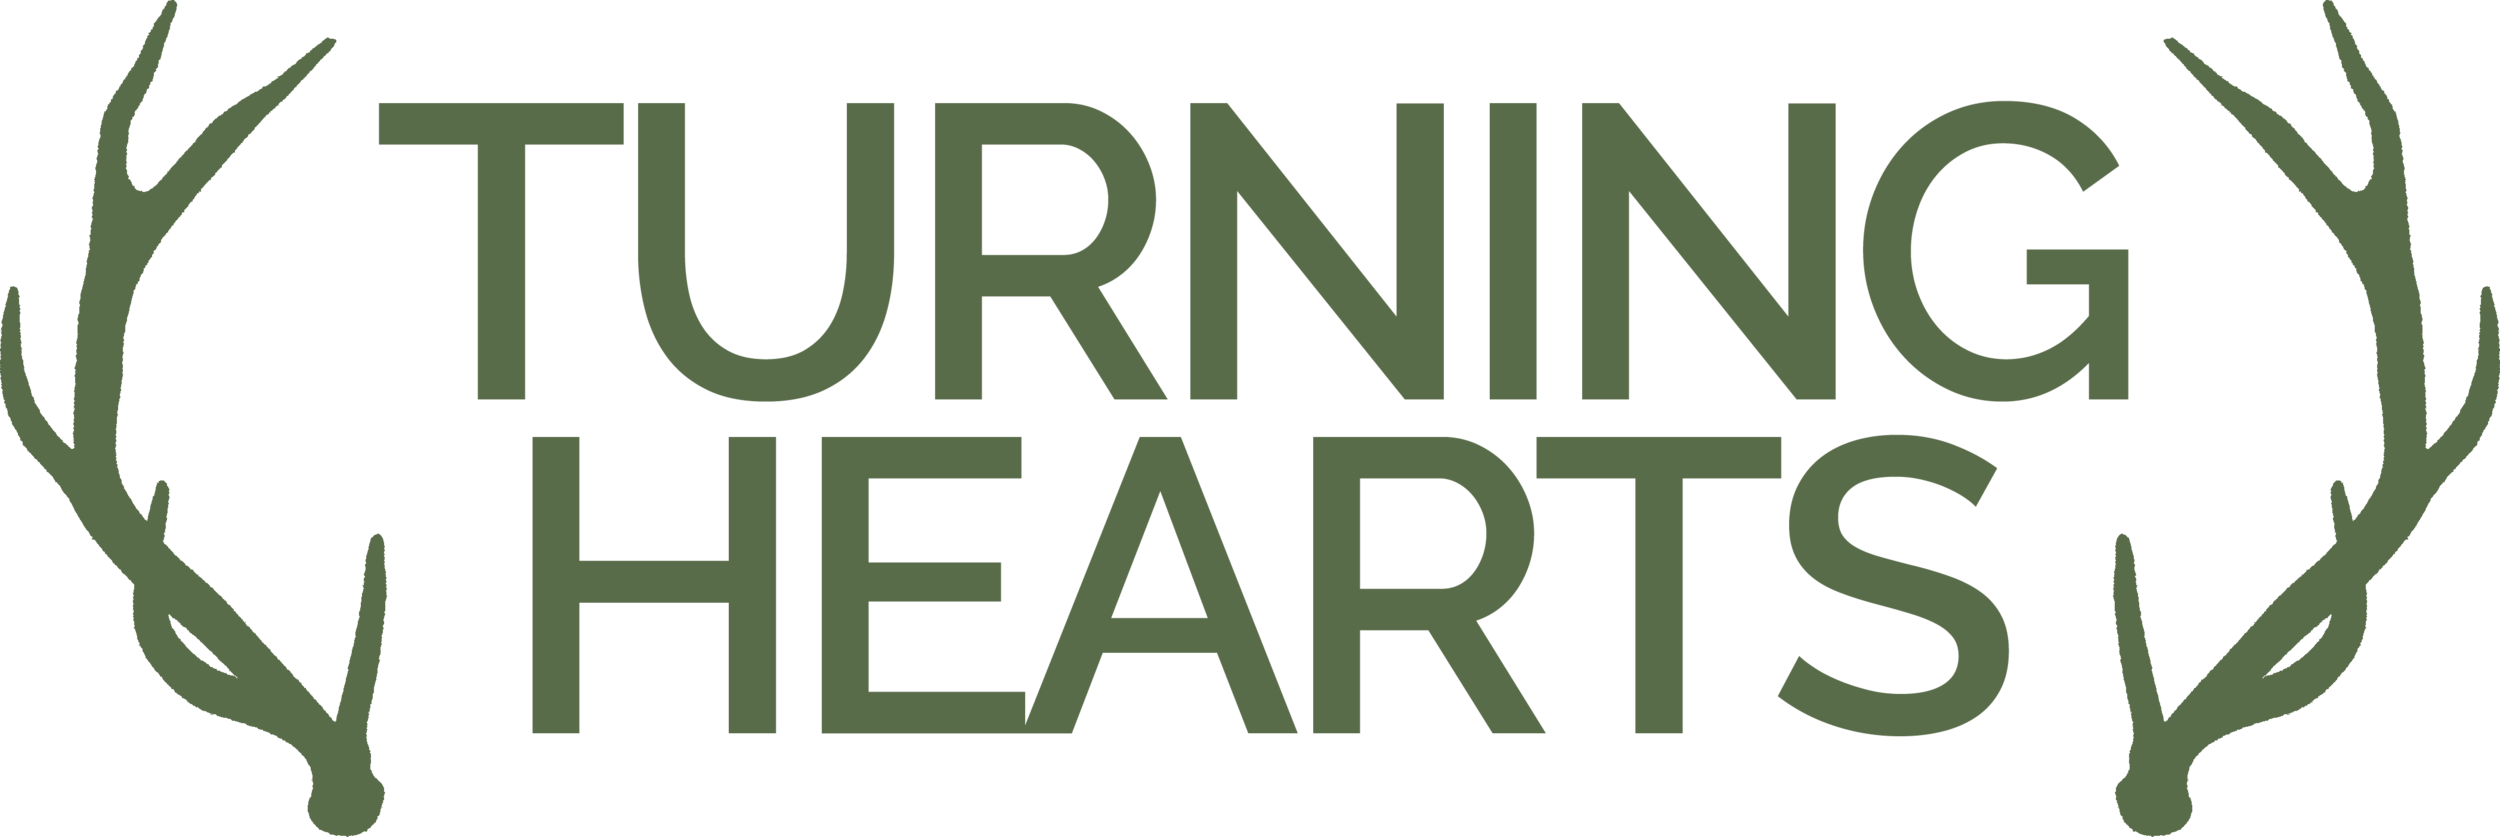 turninghearts8.png